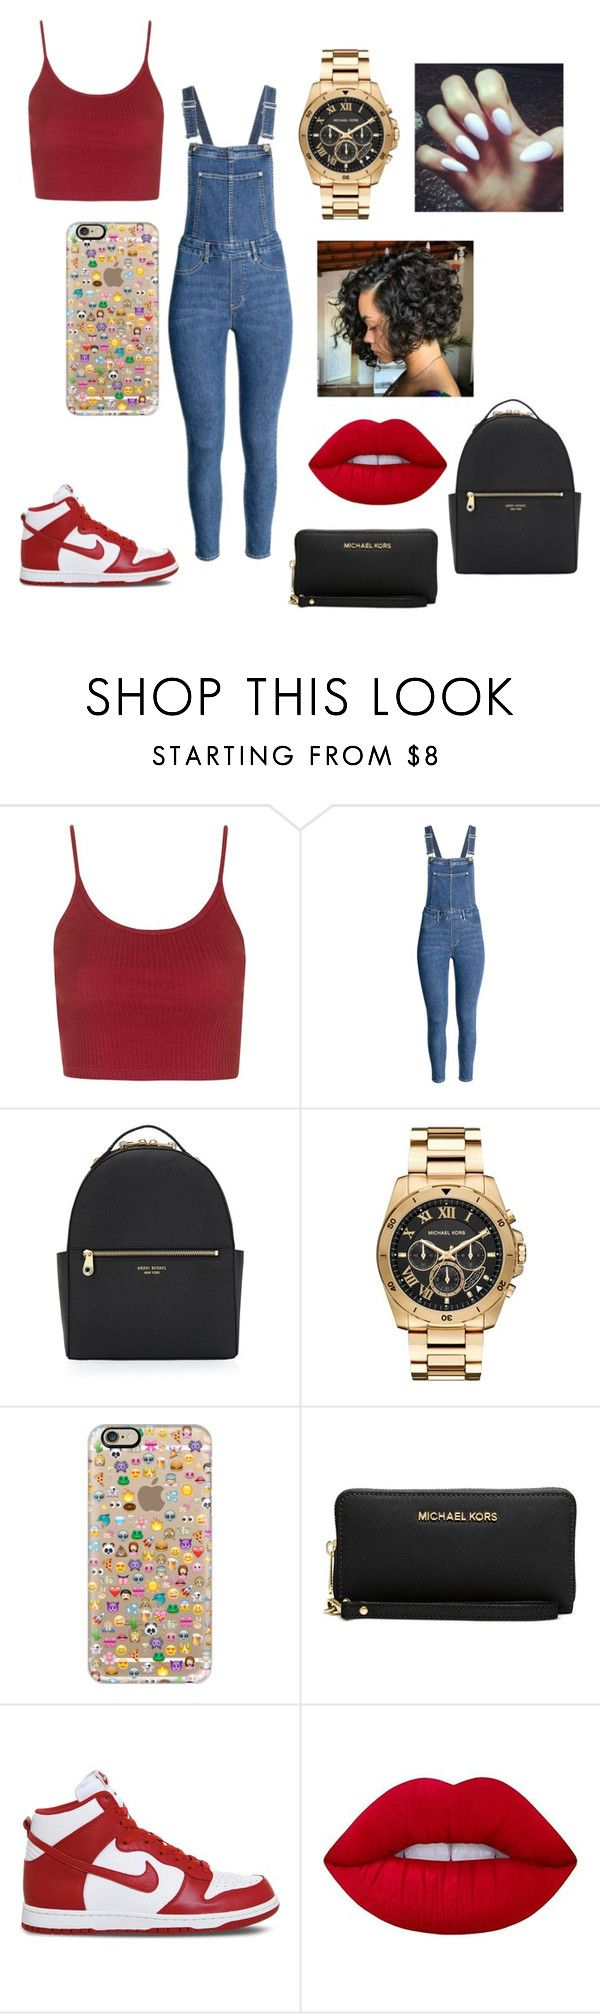 """Back to school"" by junebug02 on Polyvore featuring Topshop, Henri Bendel, Michael Kors, Casetify, NIKE and Lime Crime"